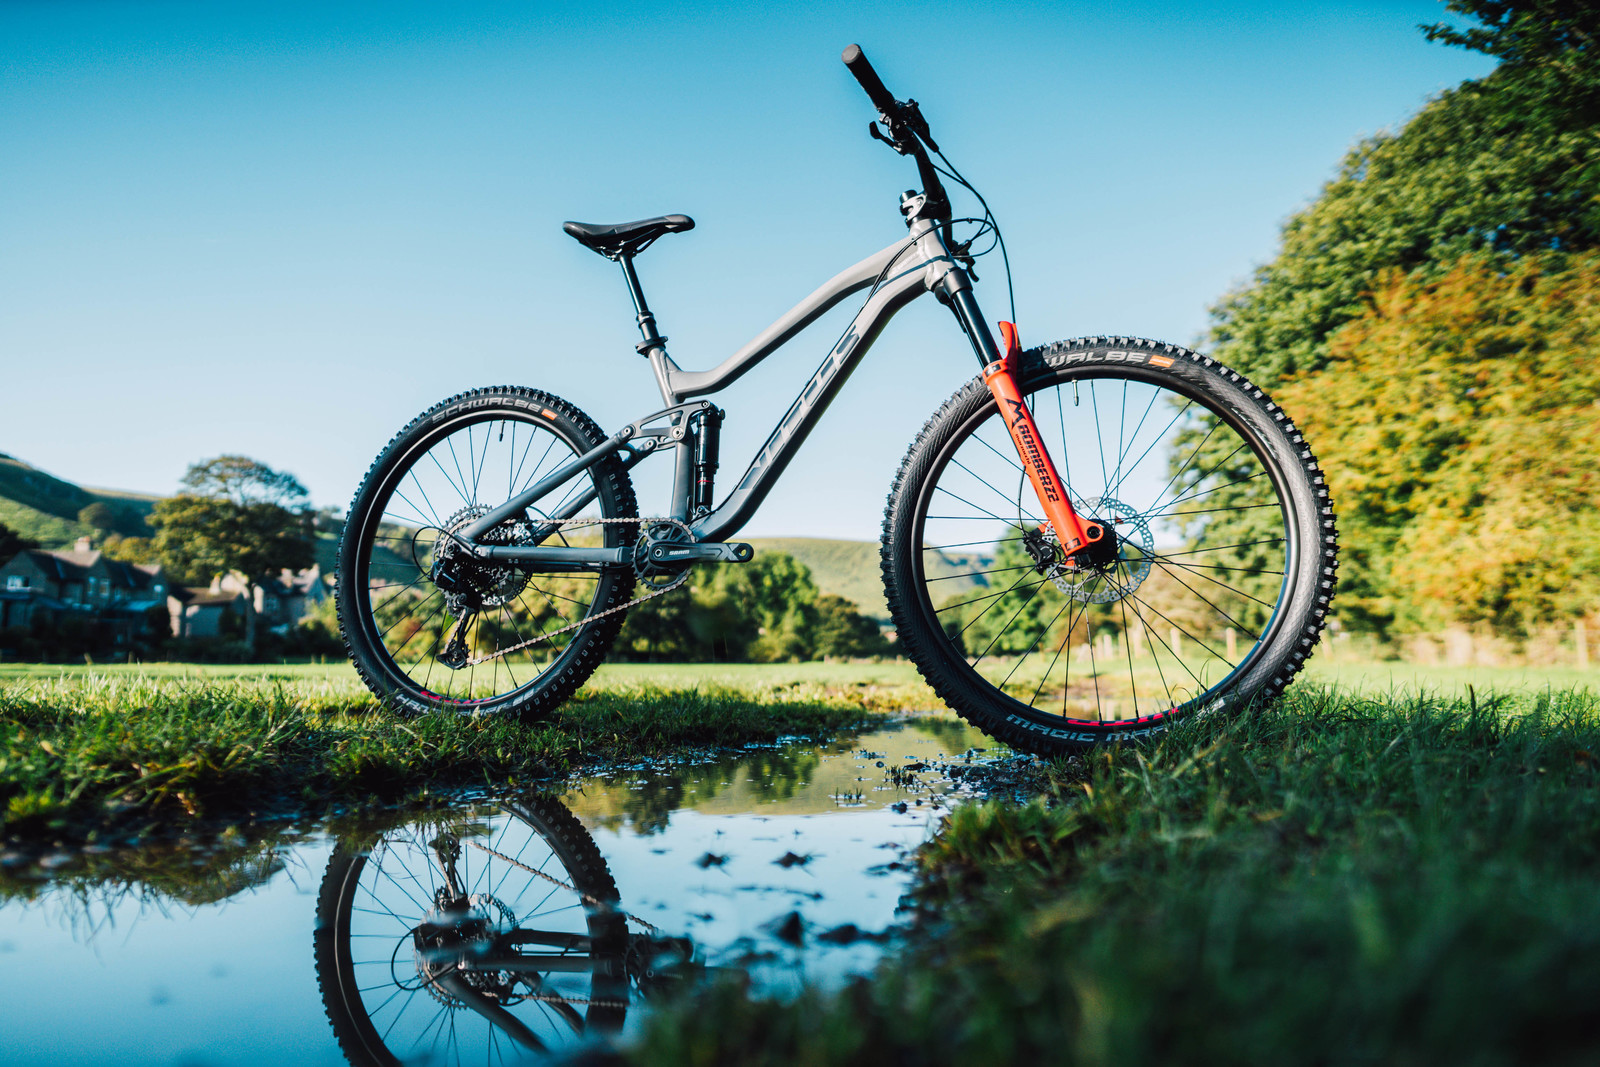 Vitus Launch the All New Mythique Trail Bike